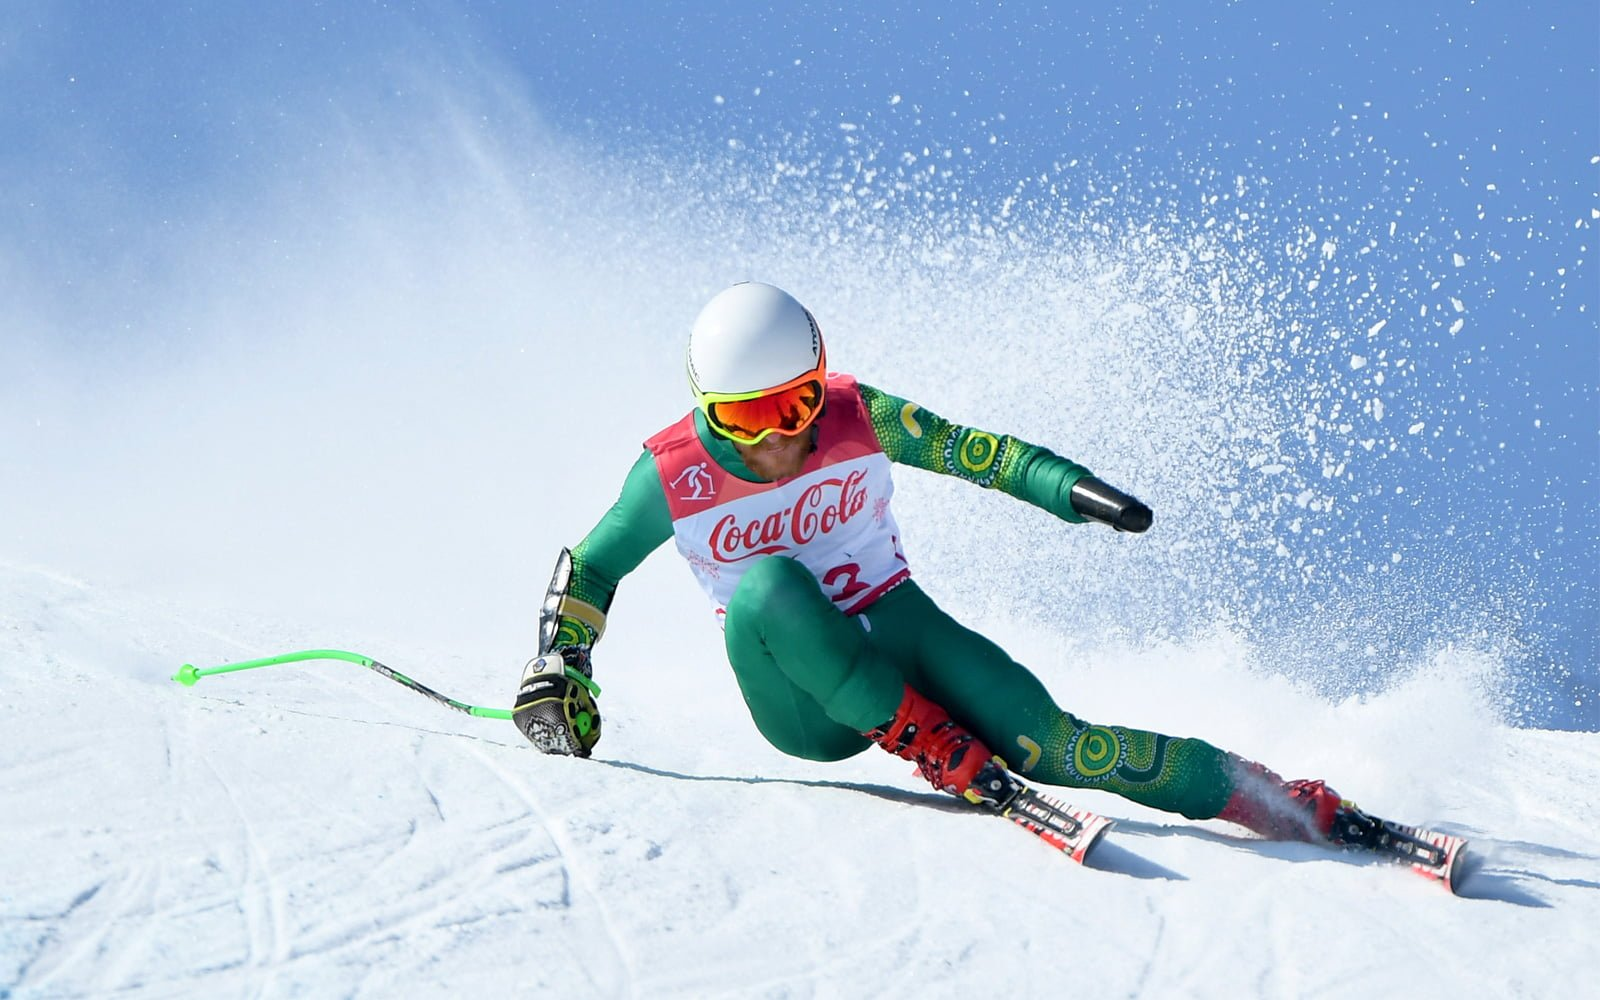 Three-time Winter Paralympian joins PA Athlete Commission